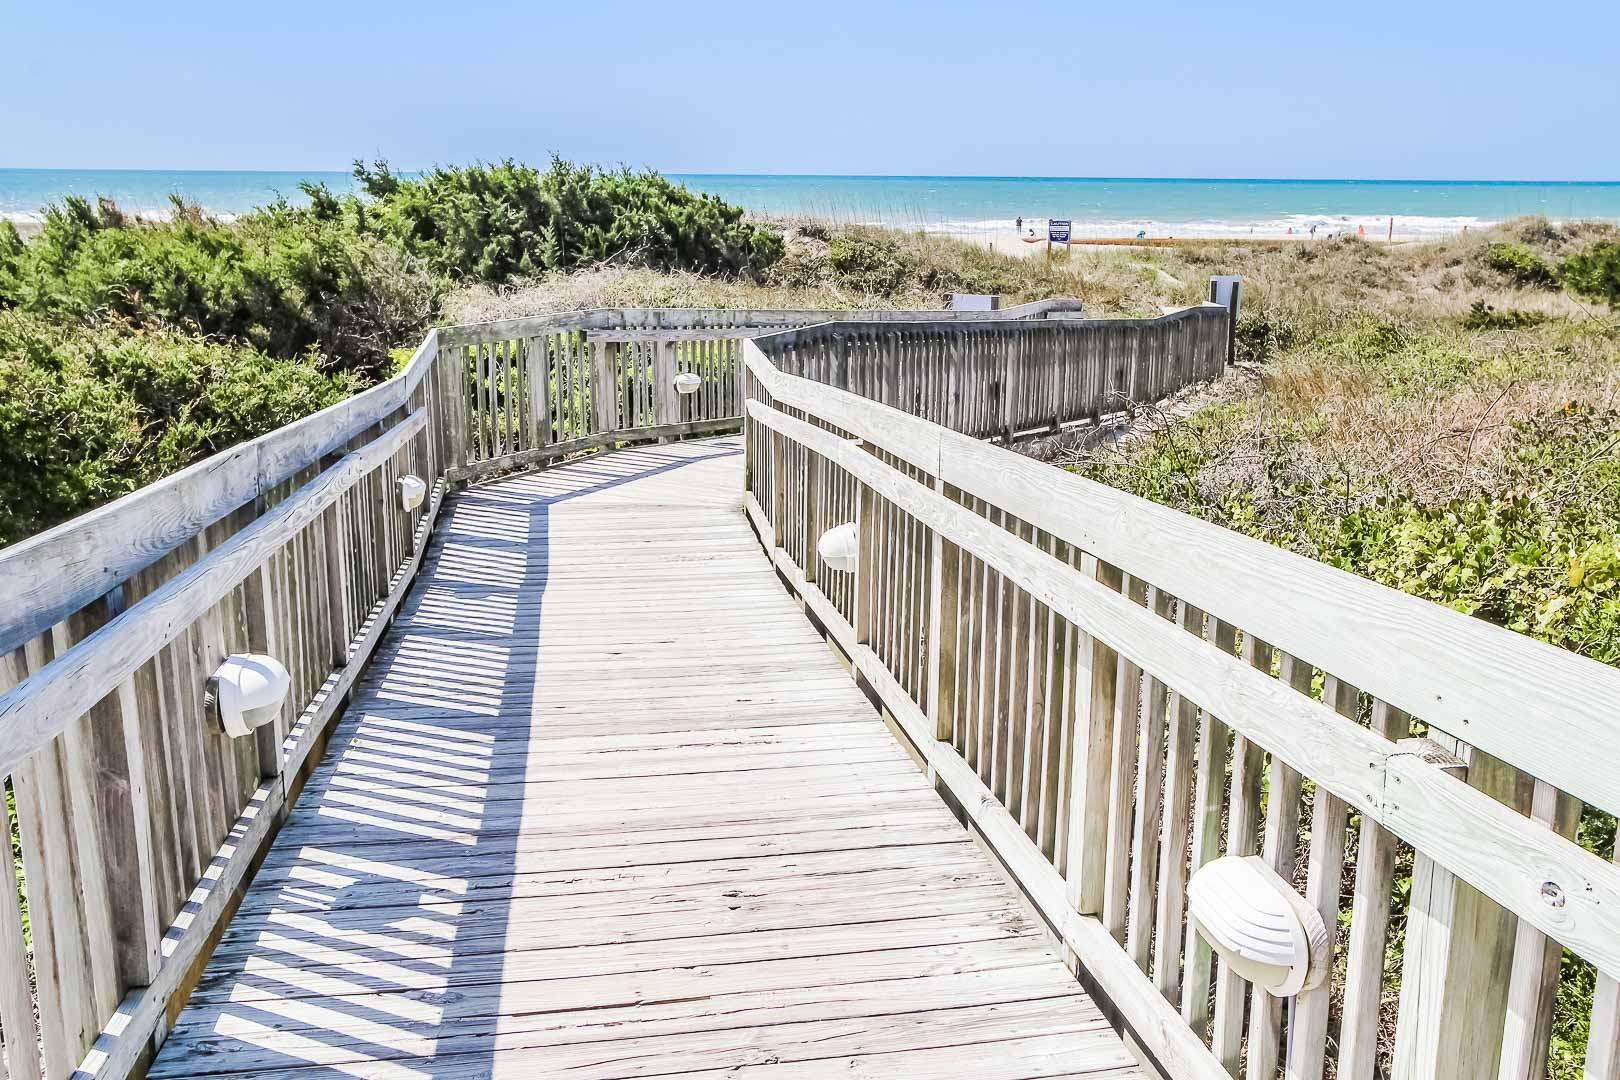 A peaceful walk from the resort with beach access  at VRI's A Place at the Beach III in North Carolina